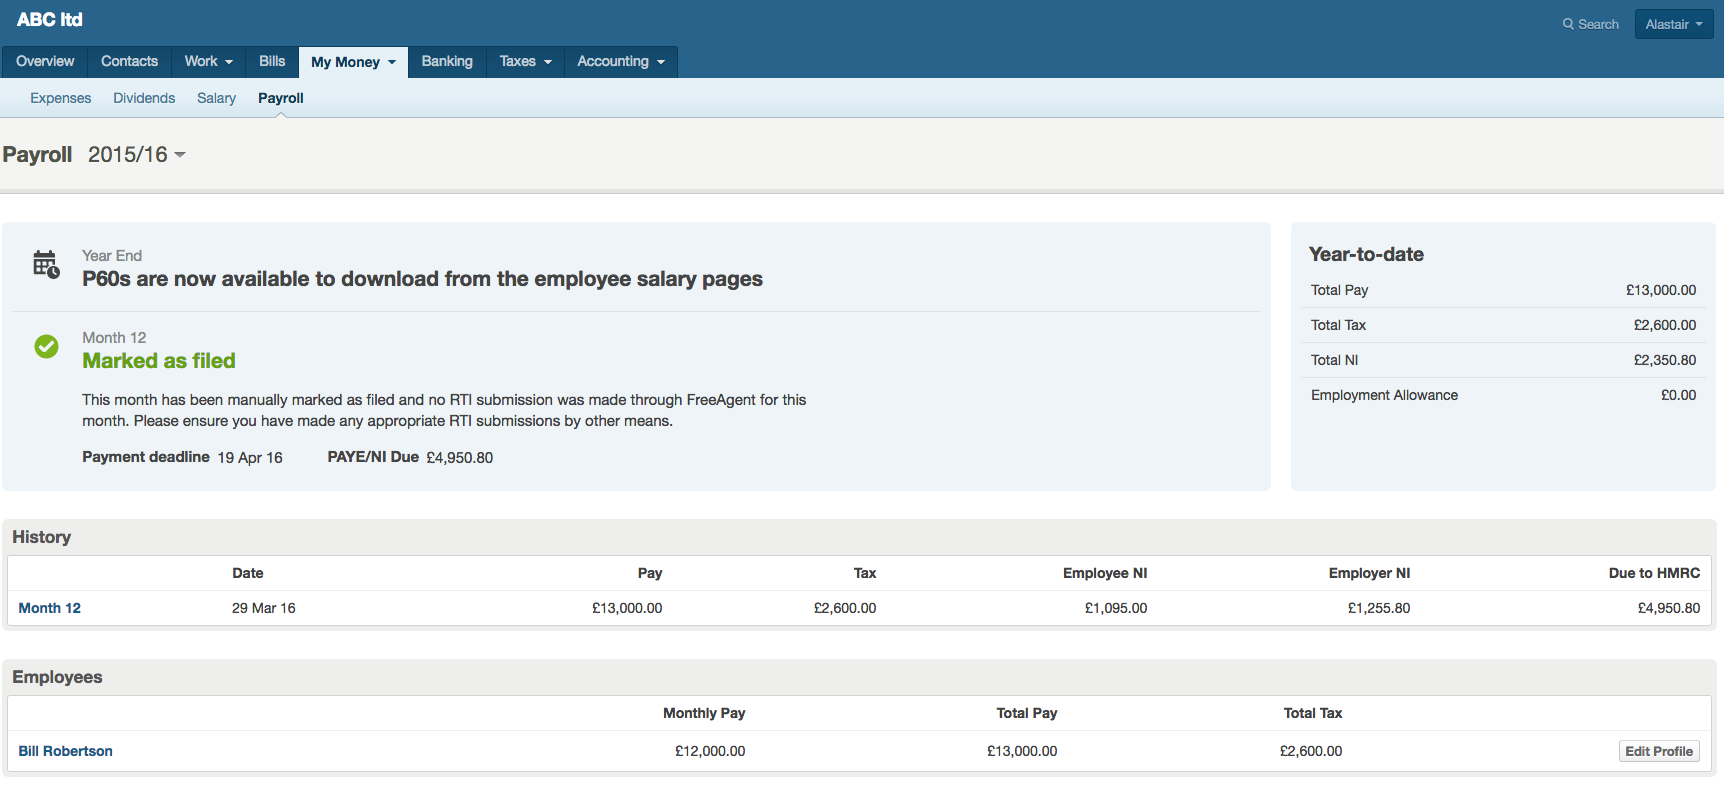 kb-accountancy-group-freeagent-payroll-screenshot